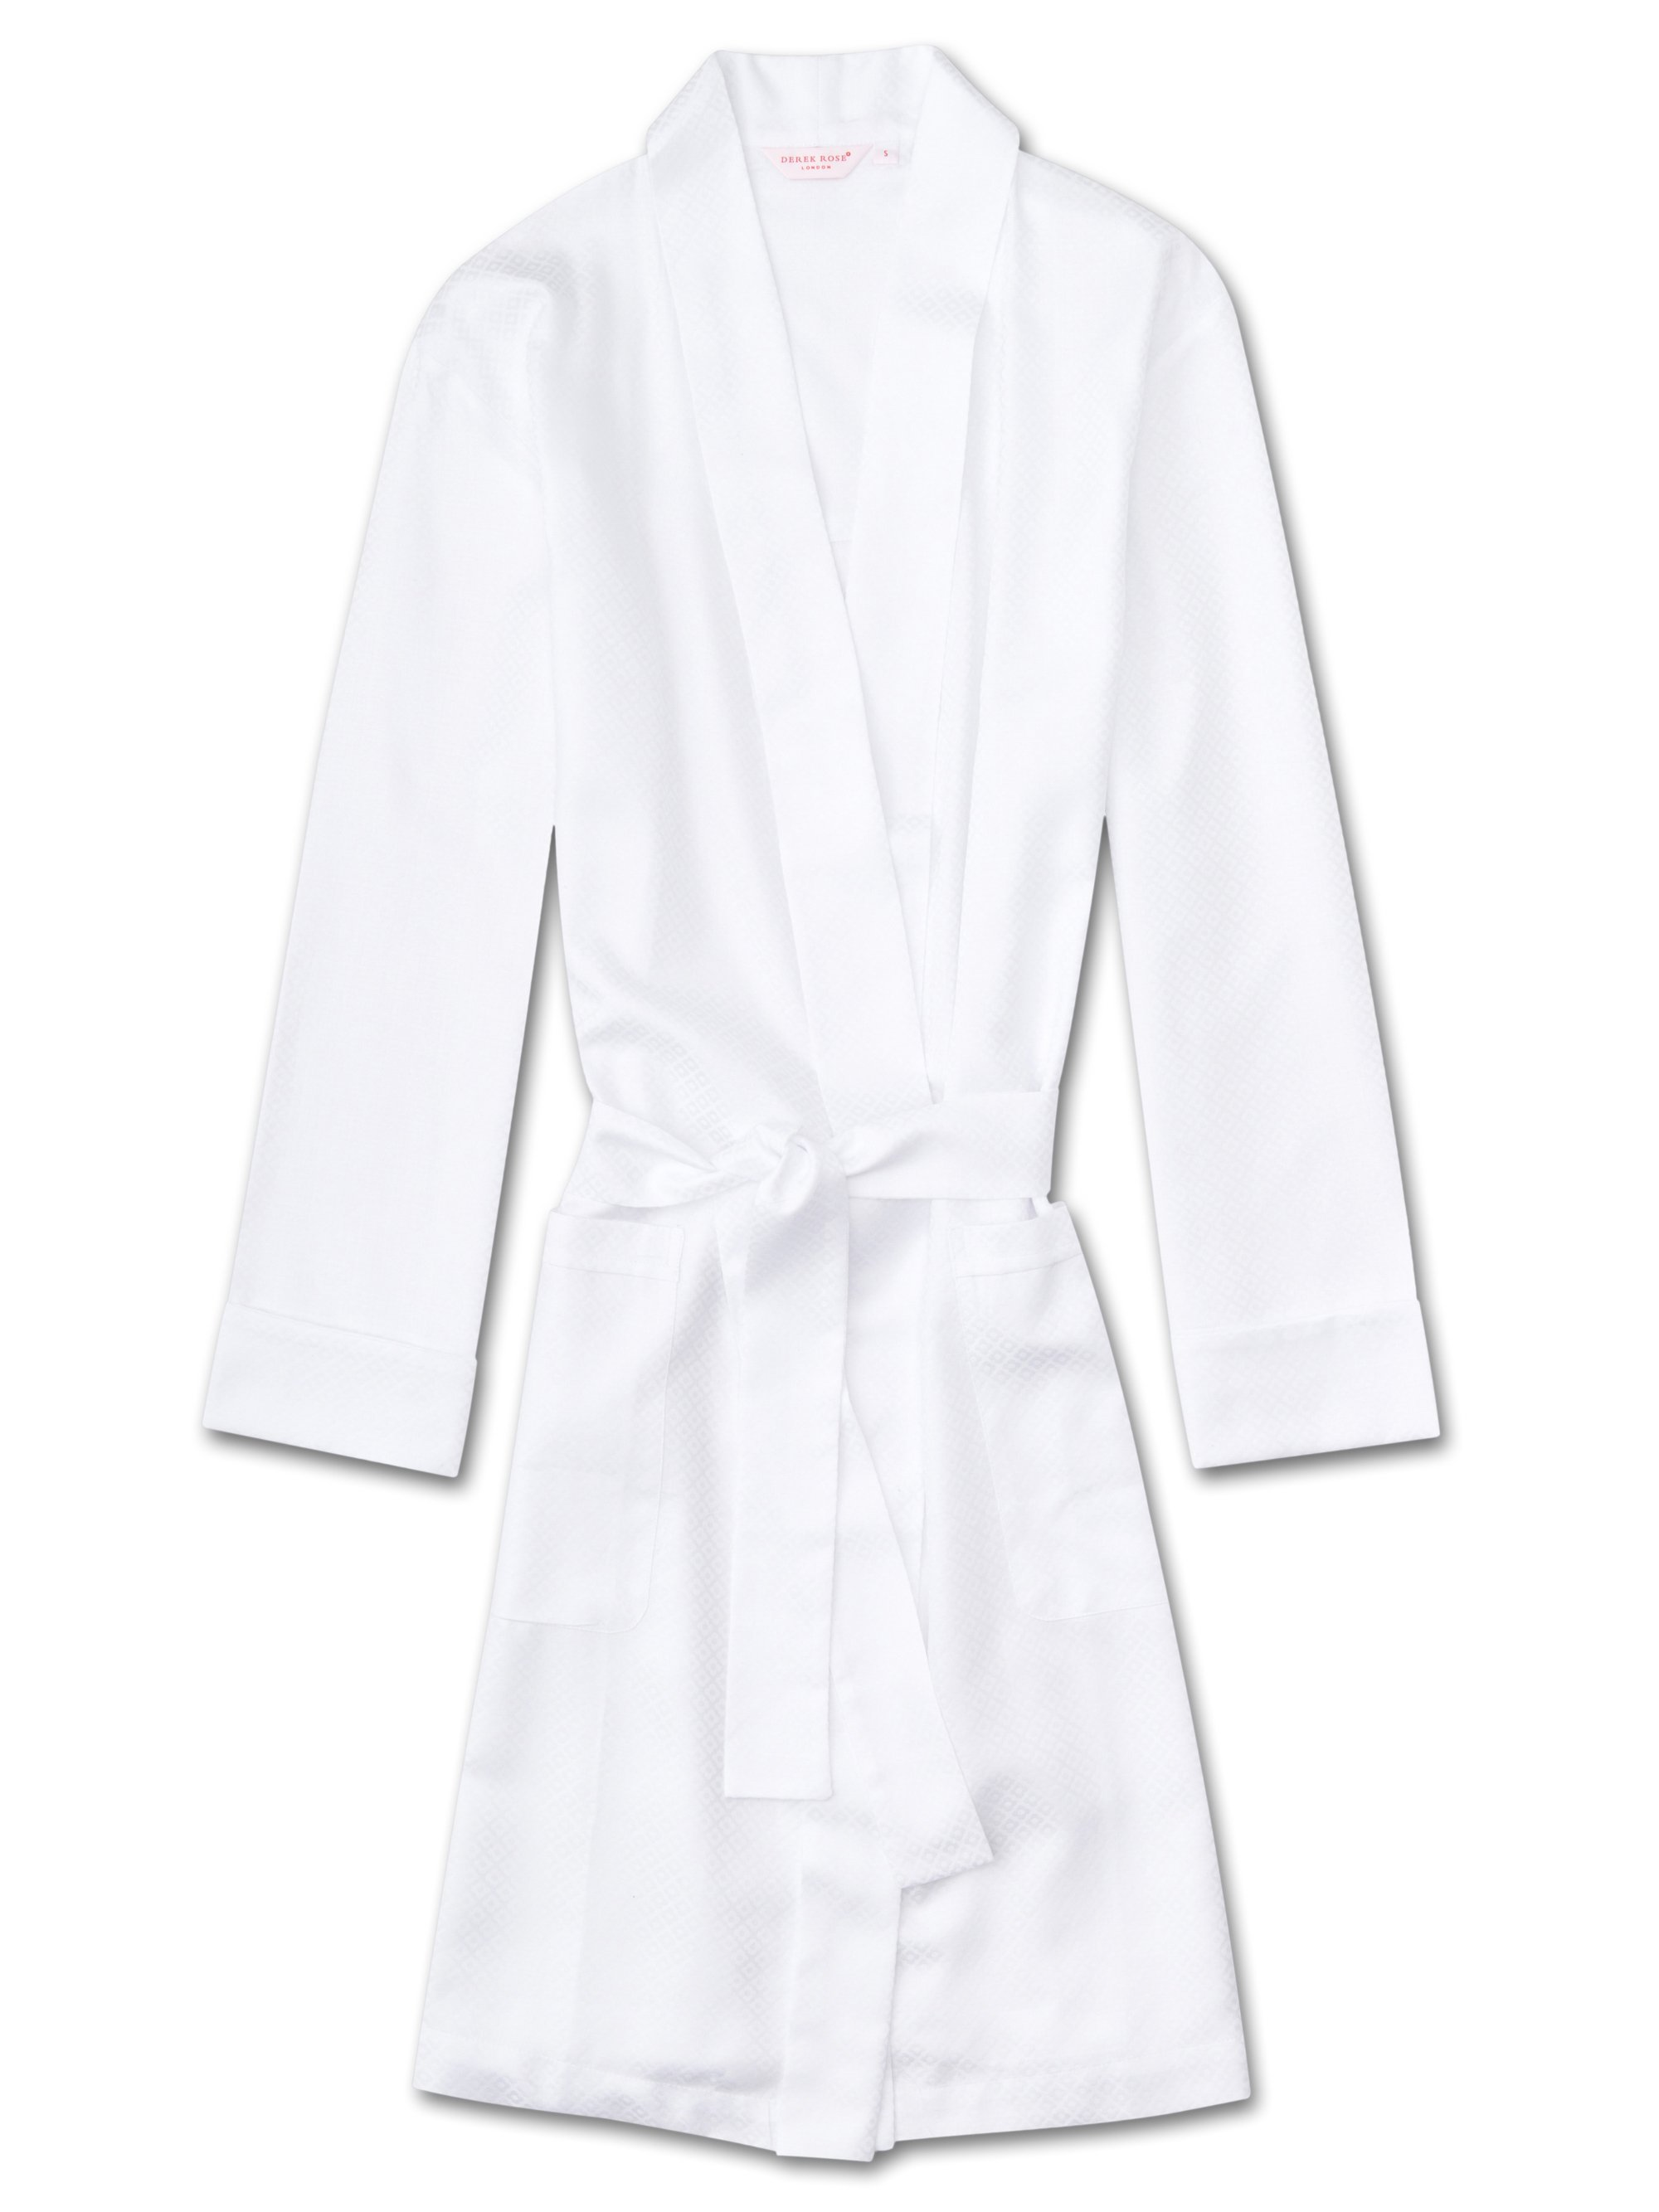 Women's Dressing Gown Kate 2 Cotton Jacquard White